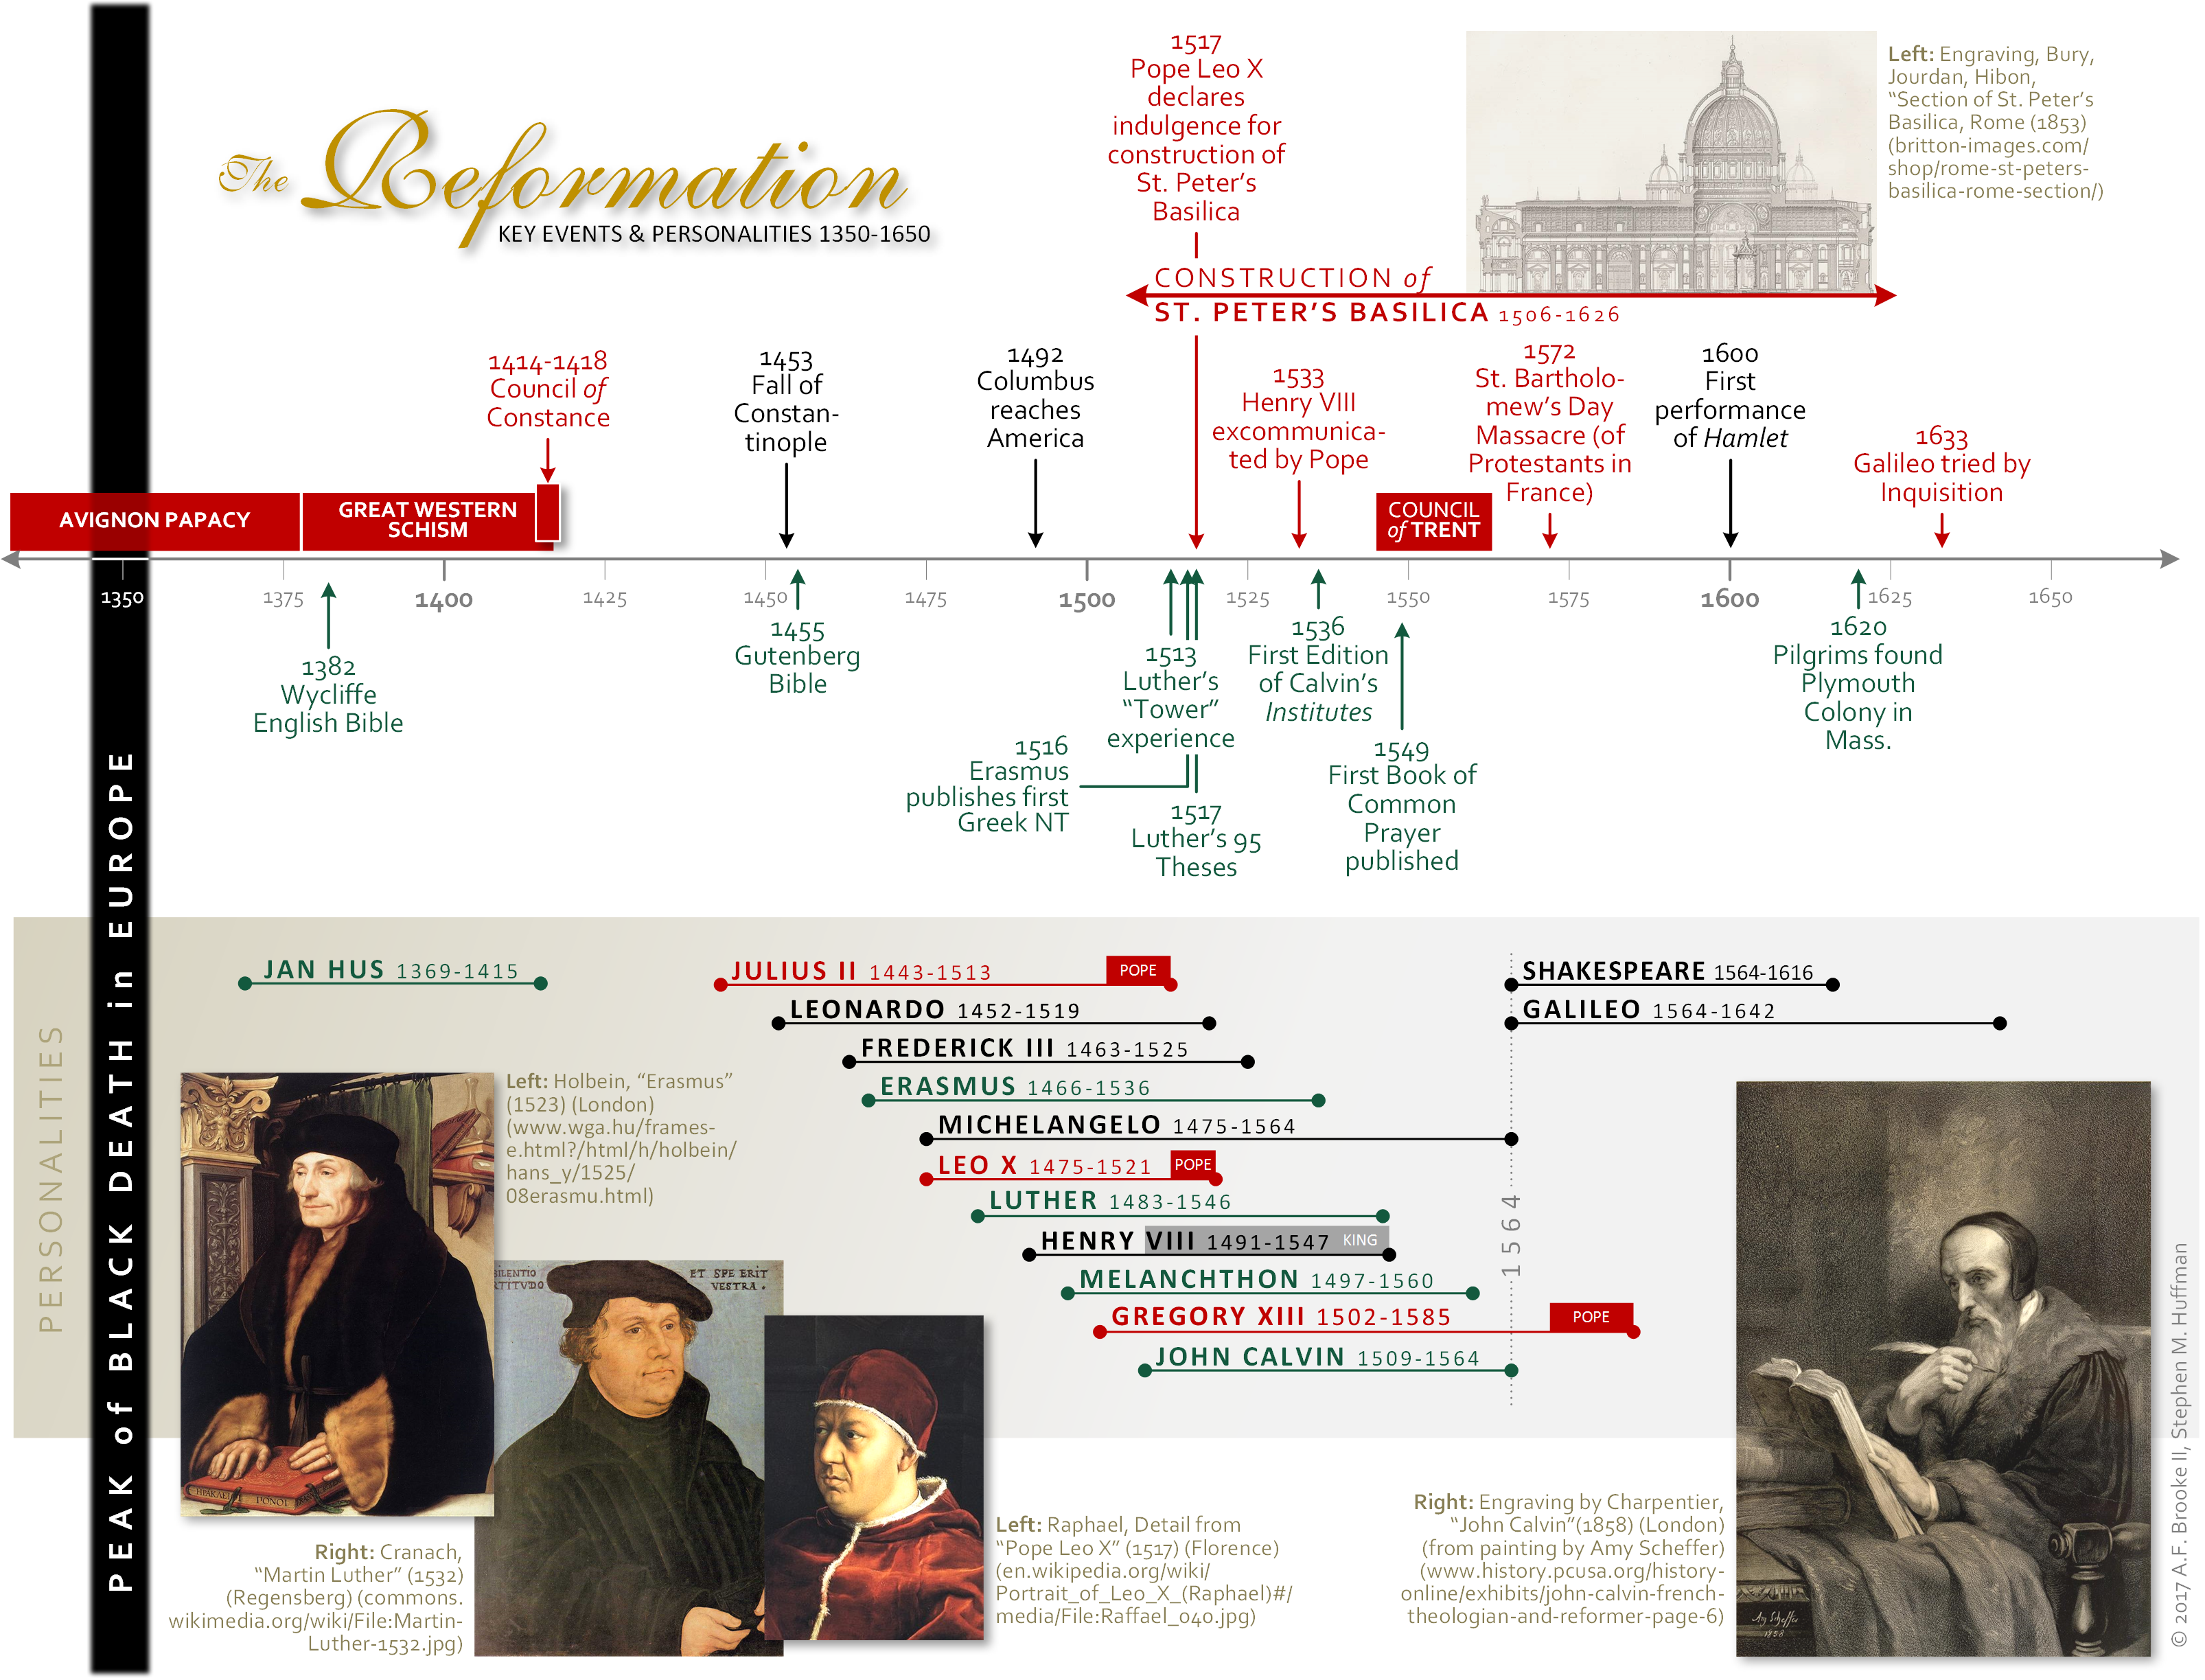 Reformation chronology